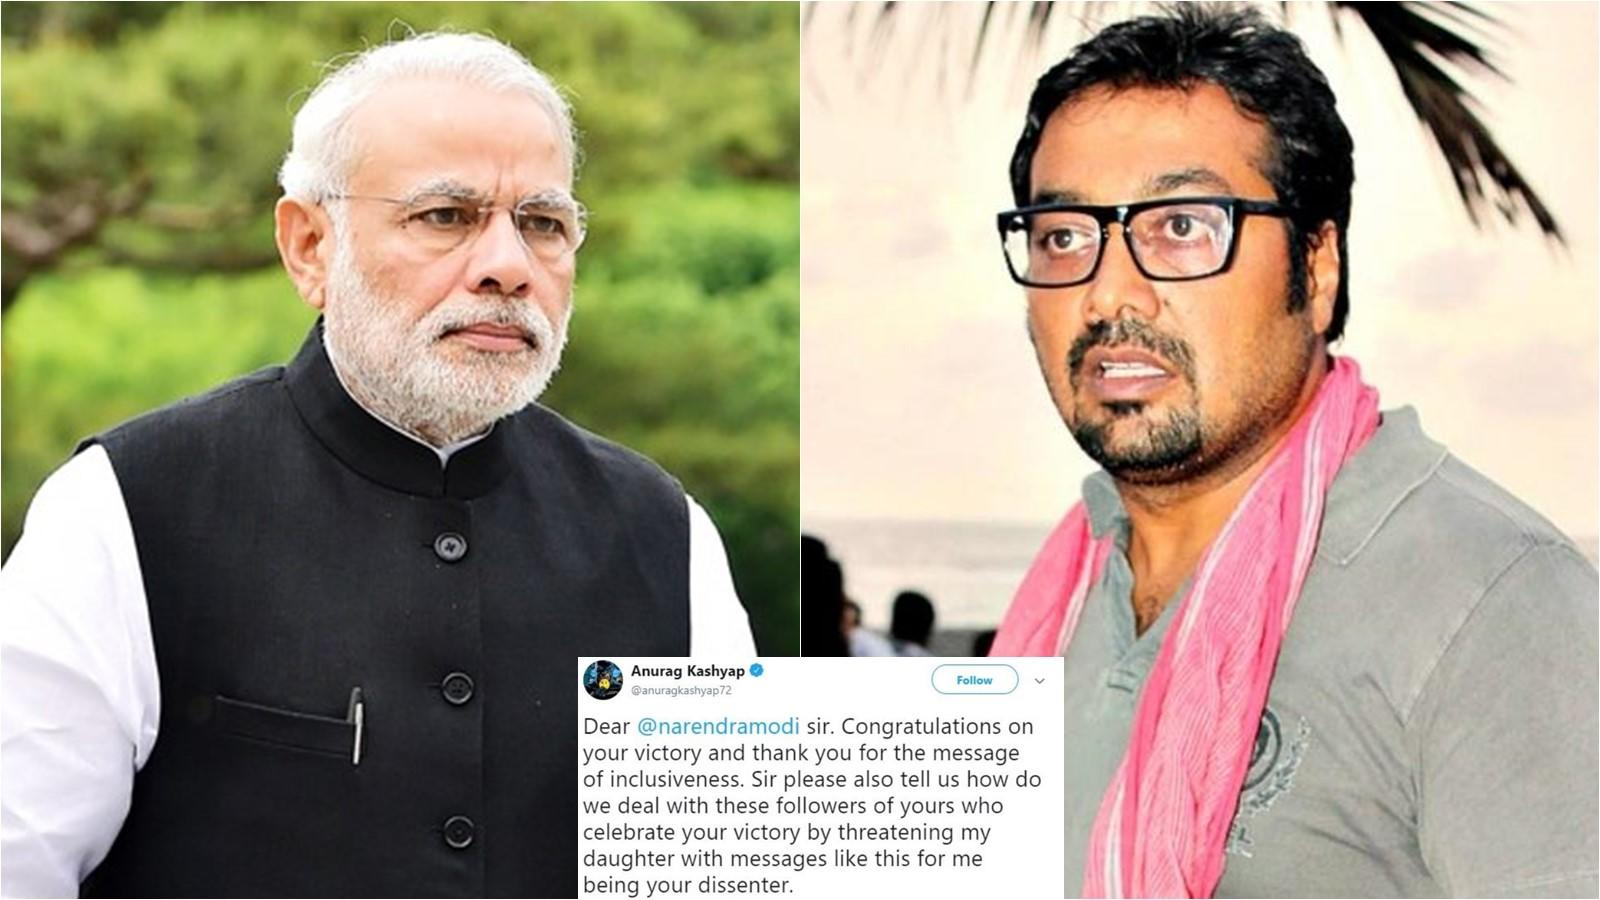 anurag-kashyap-complains-to-pm-narendra-modi-after-troll-threatens-daughter